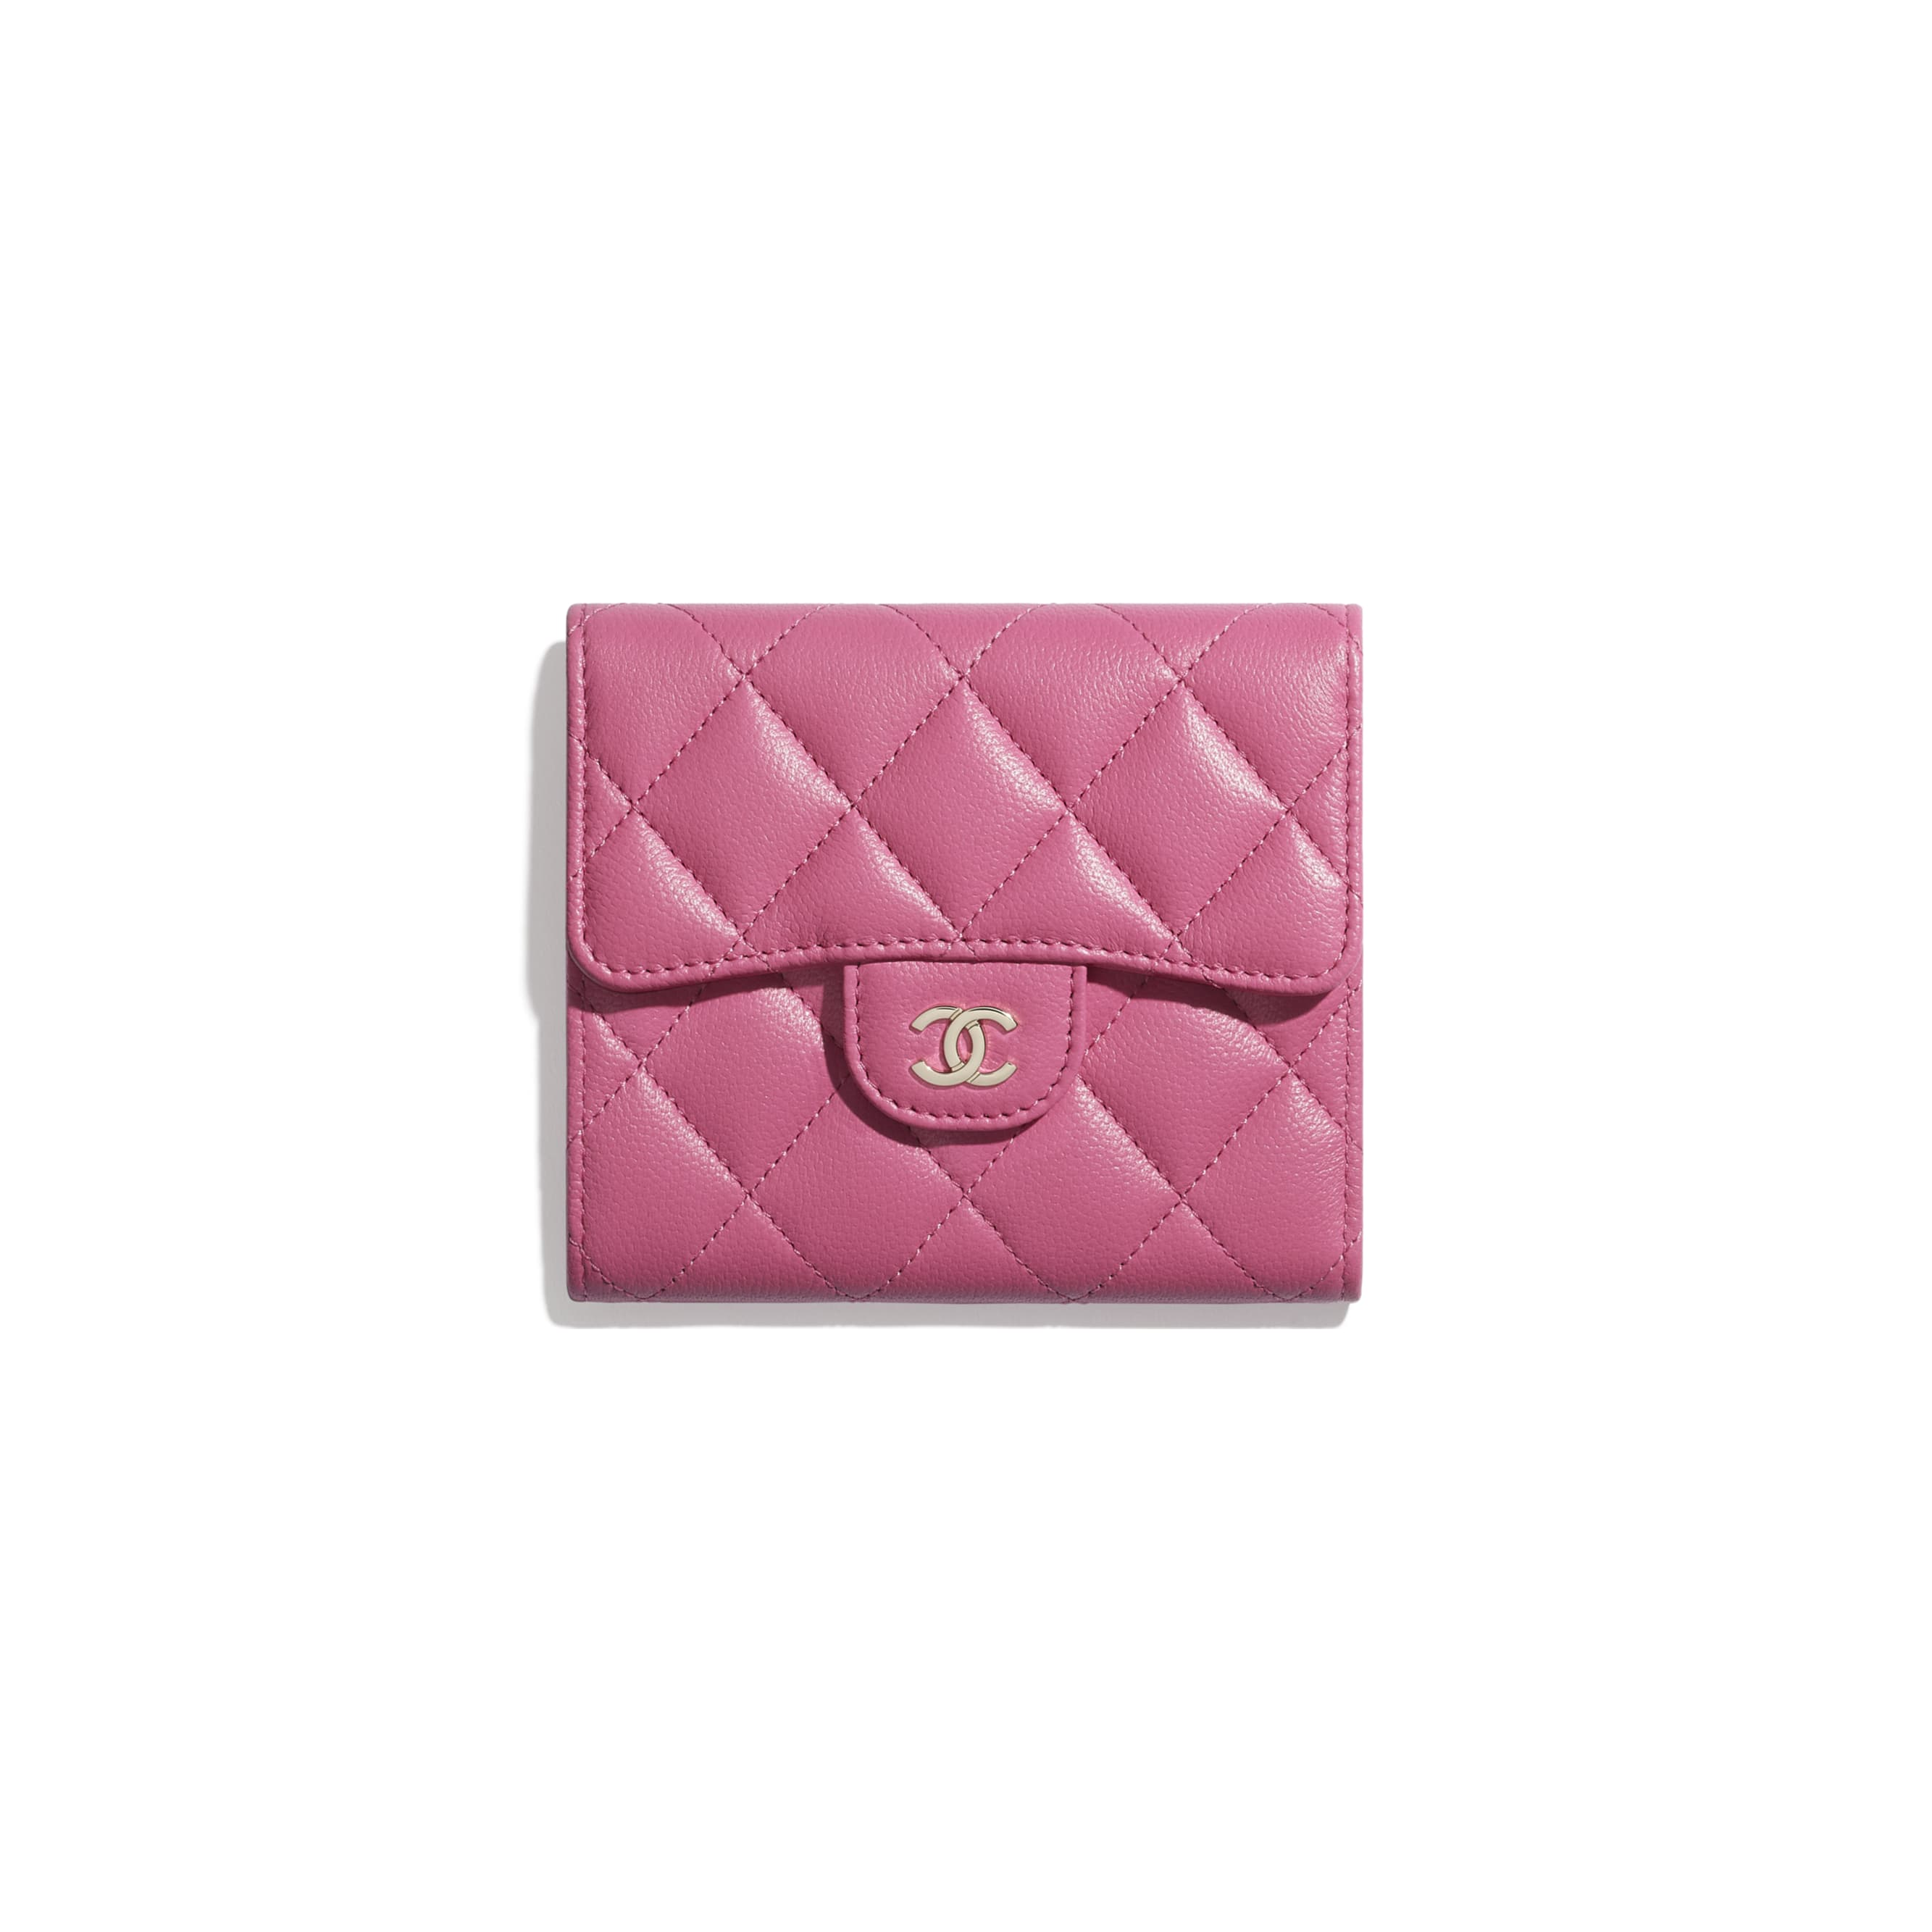 Classic Small Flap Wallet - Pink - Grained Shiny Calfskin & Gold-Tone Metal - CHANEL - Default view - see standard sized version